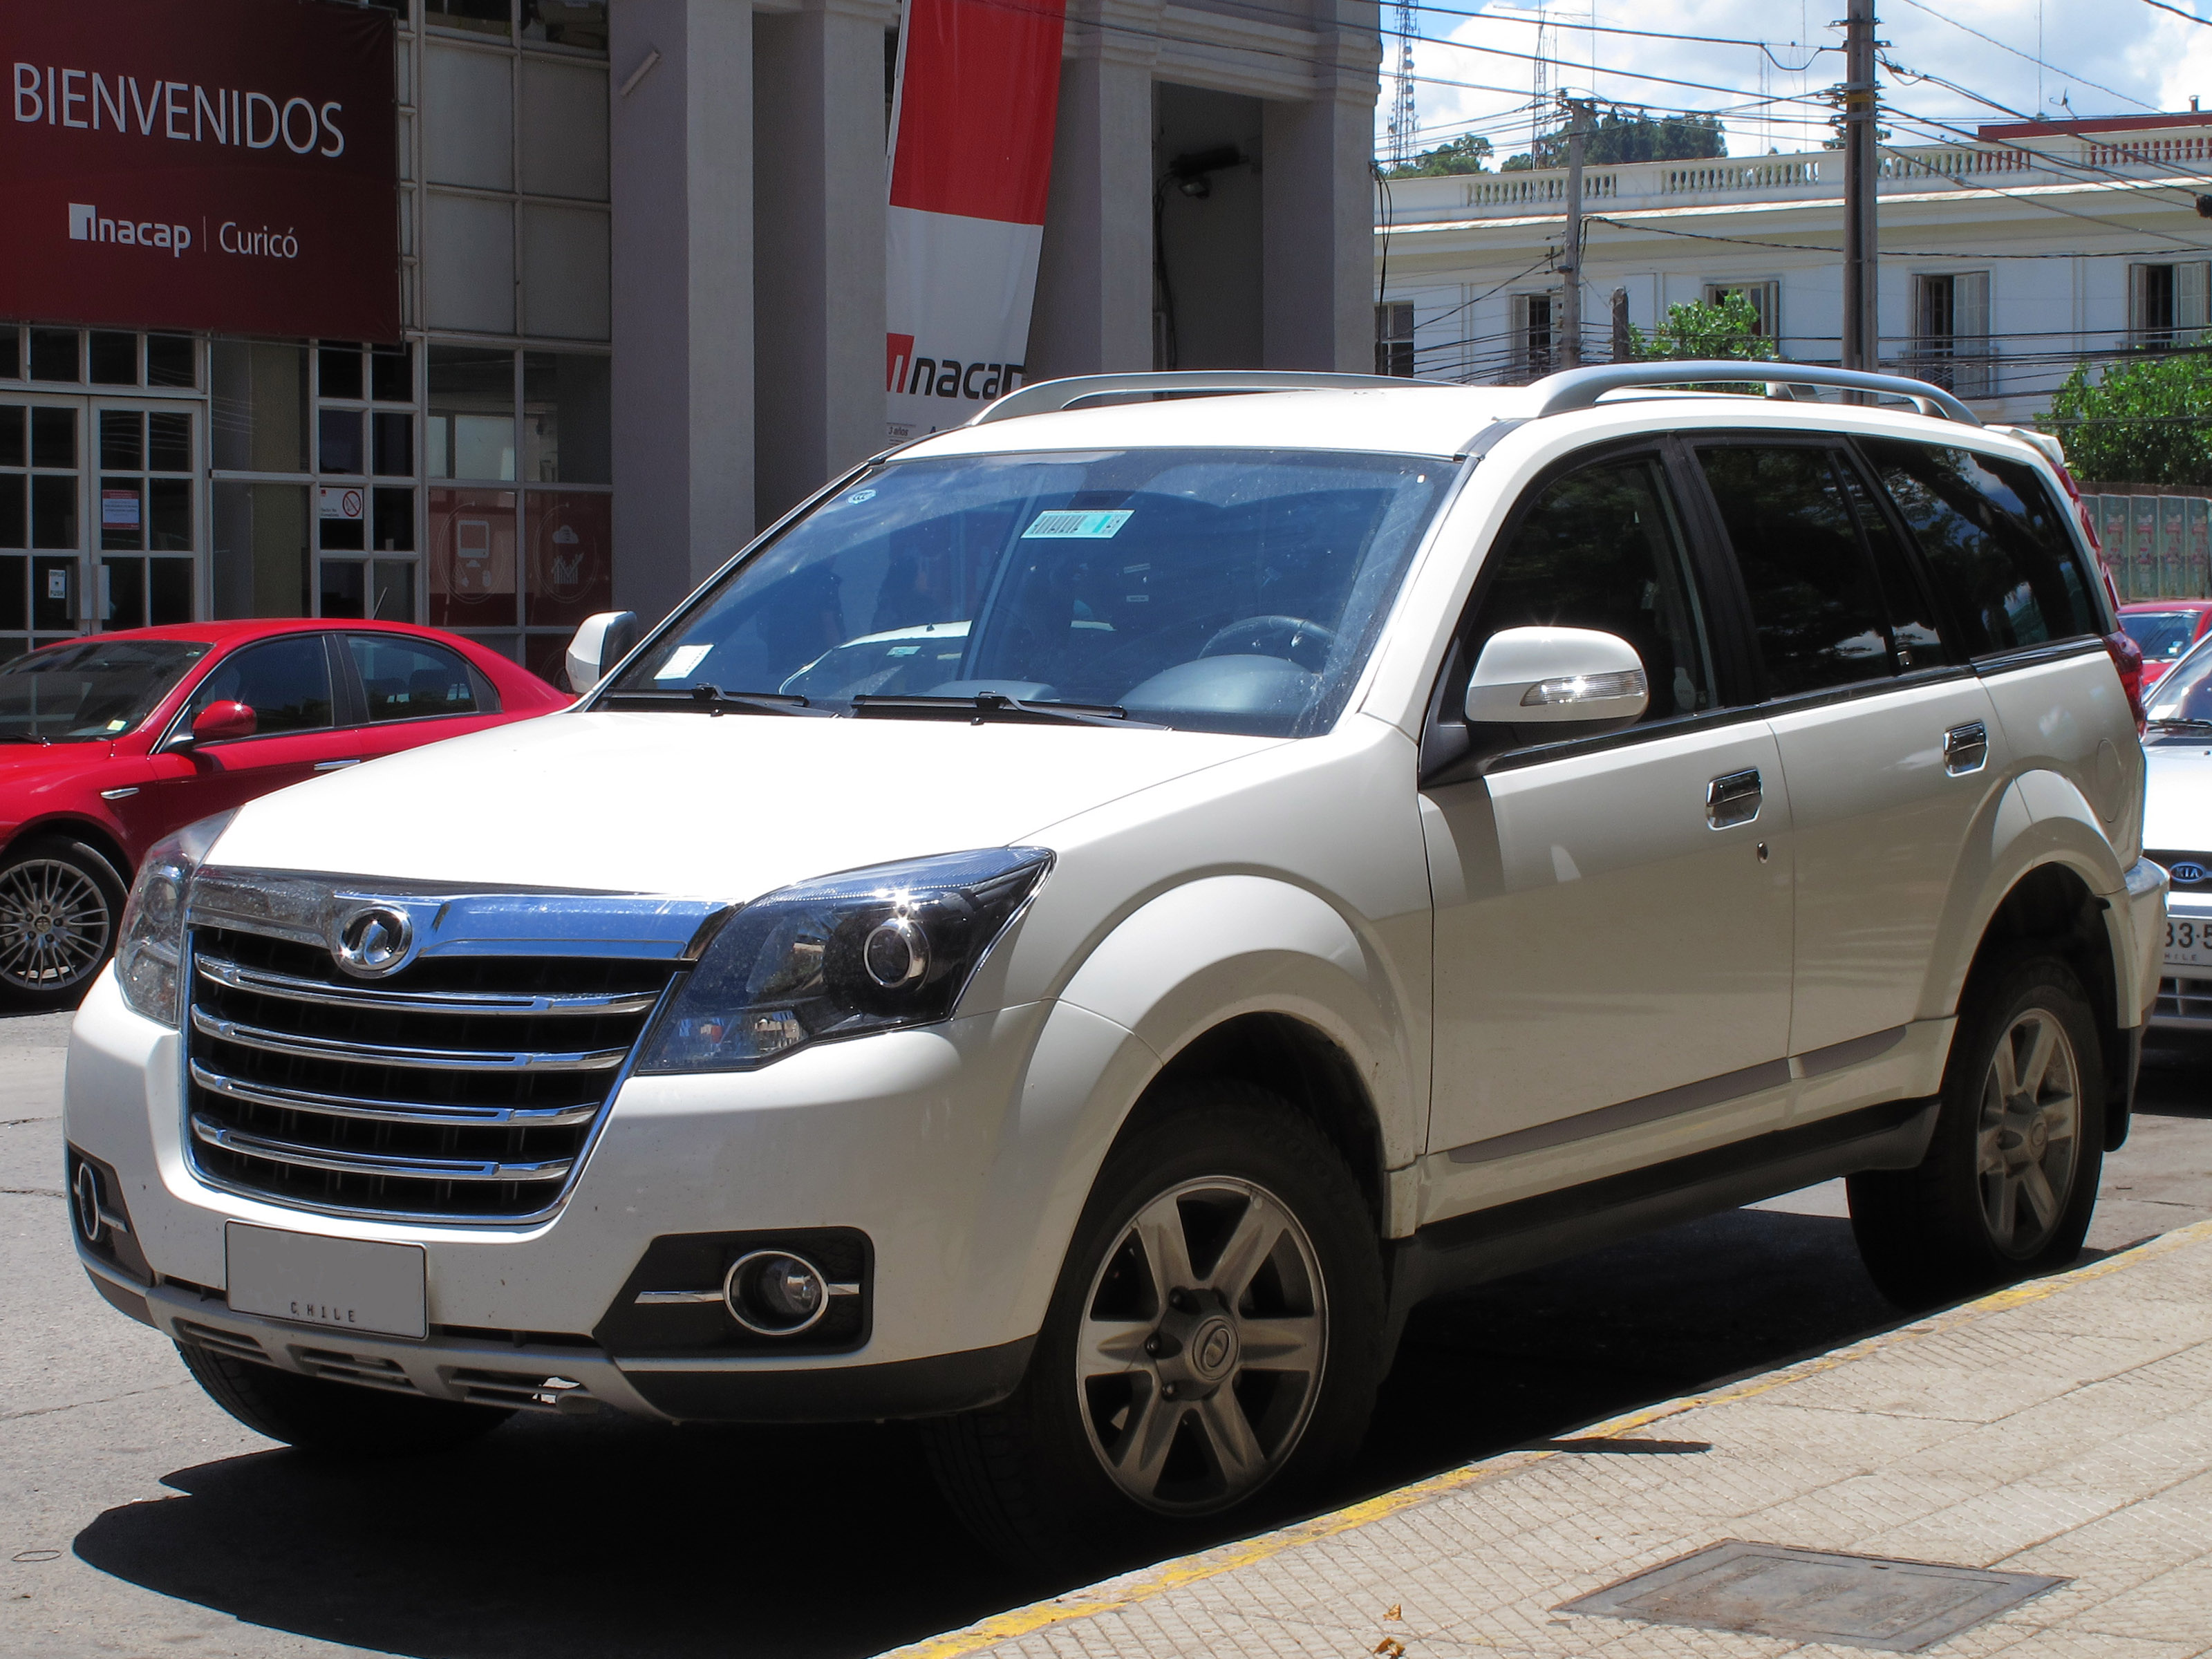 File Great Wall Haval H3 2 0 Le 2015 16151029722 Jpg